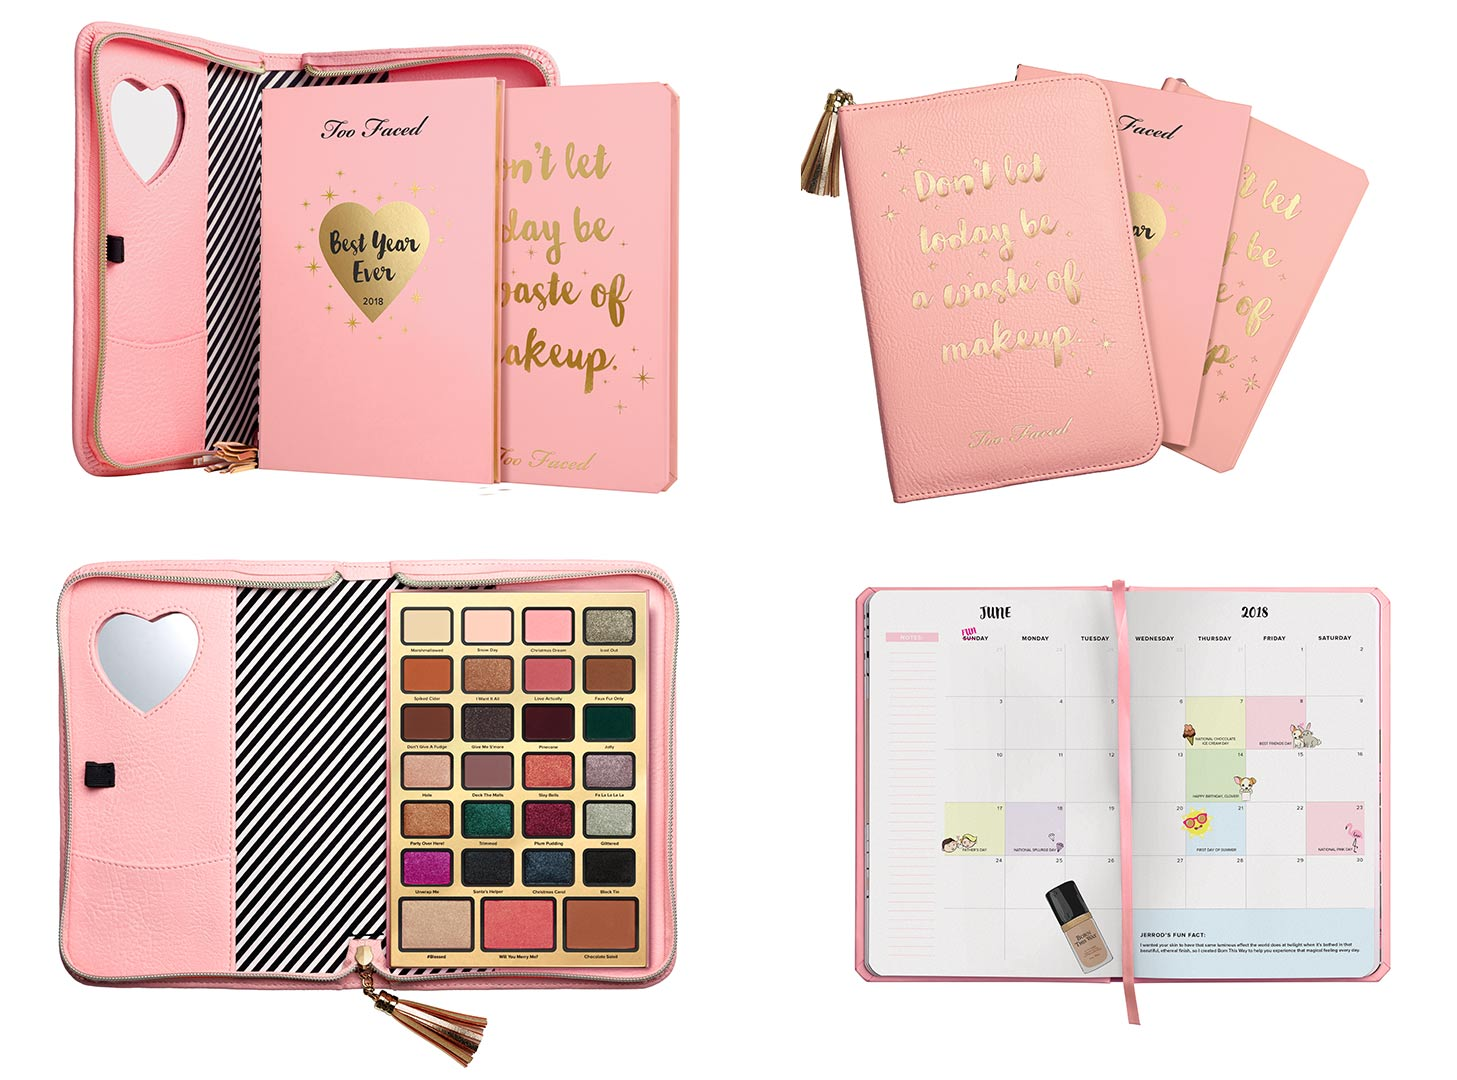 Novità natalizie Too Faced, Boss Lady Beauty Agenda